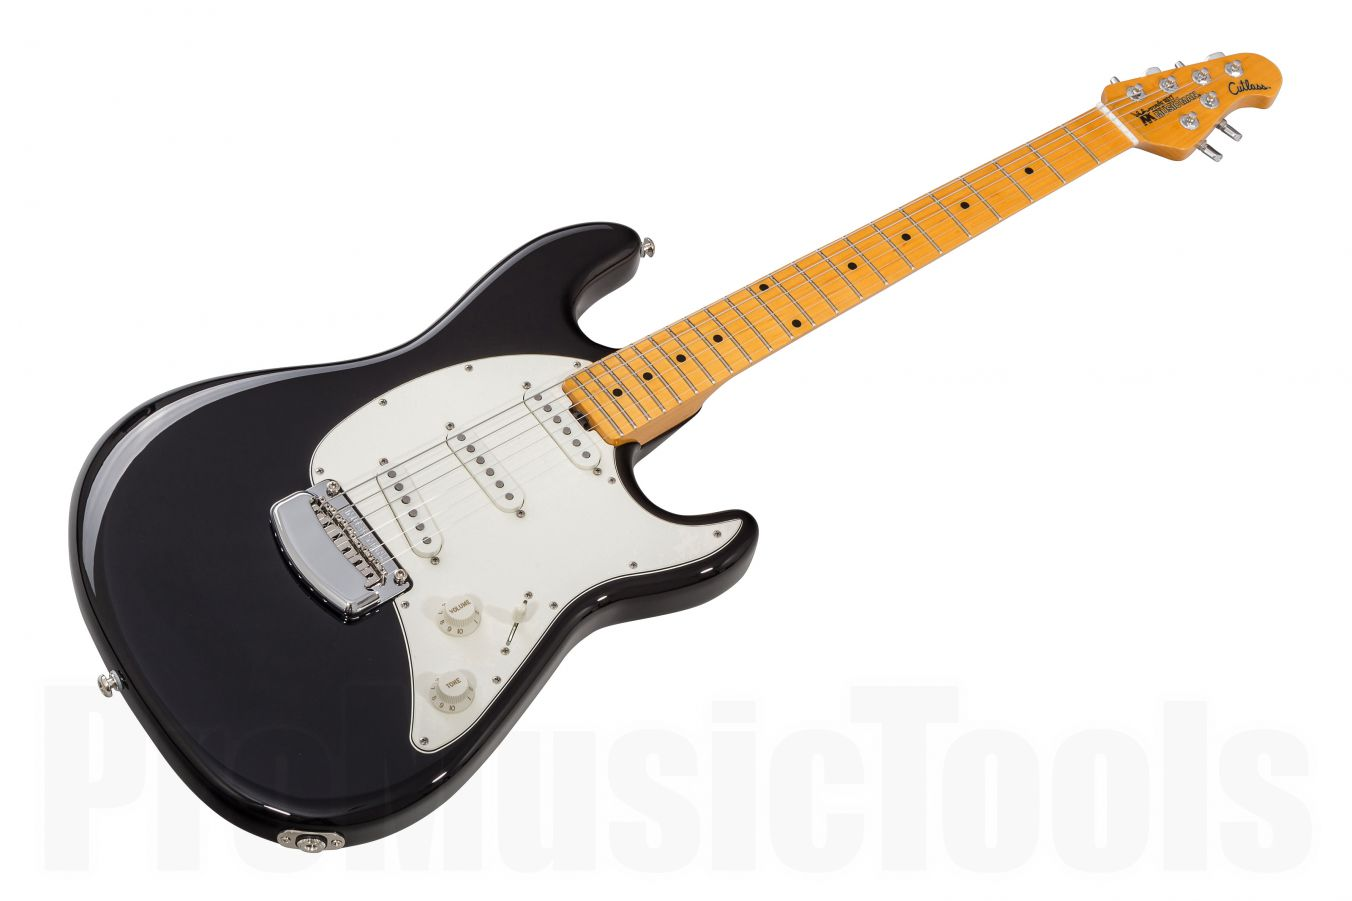 Music Man USA Cutlass Guitar BK - Black MN